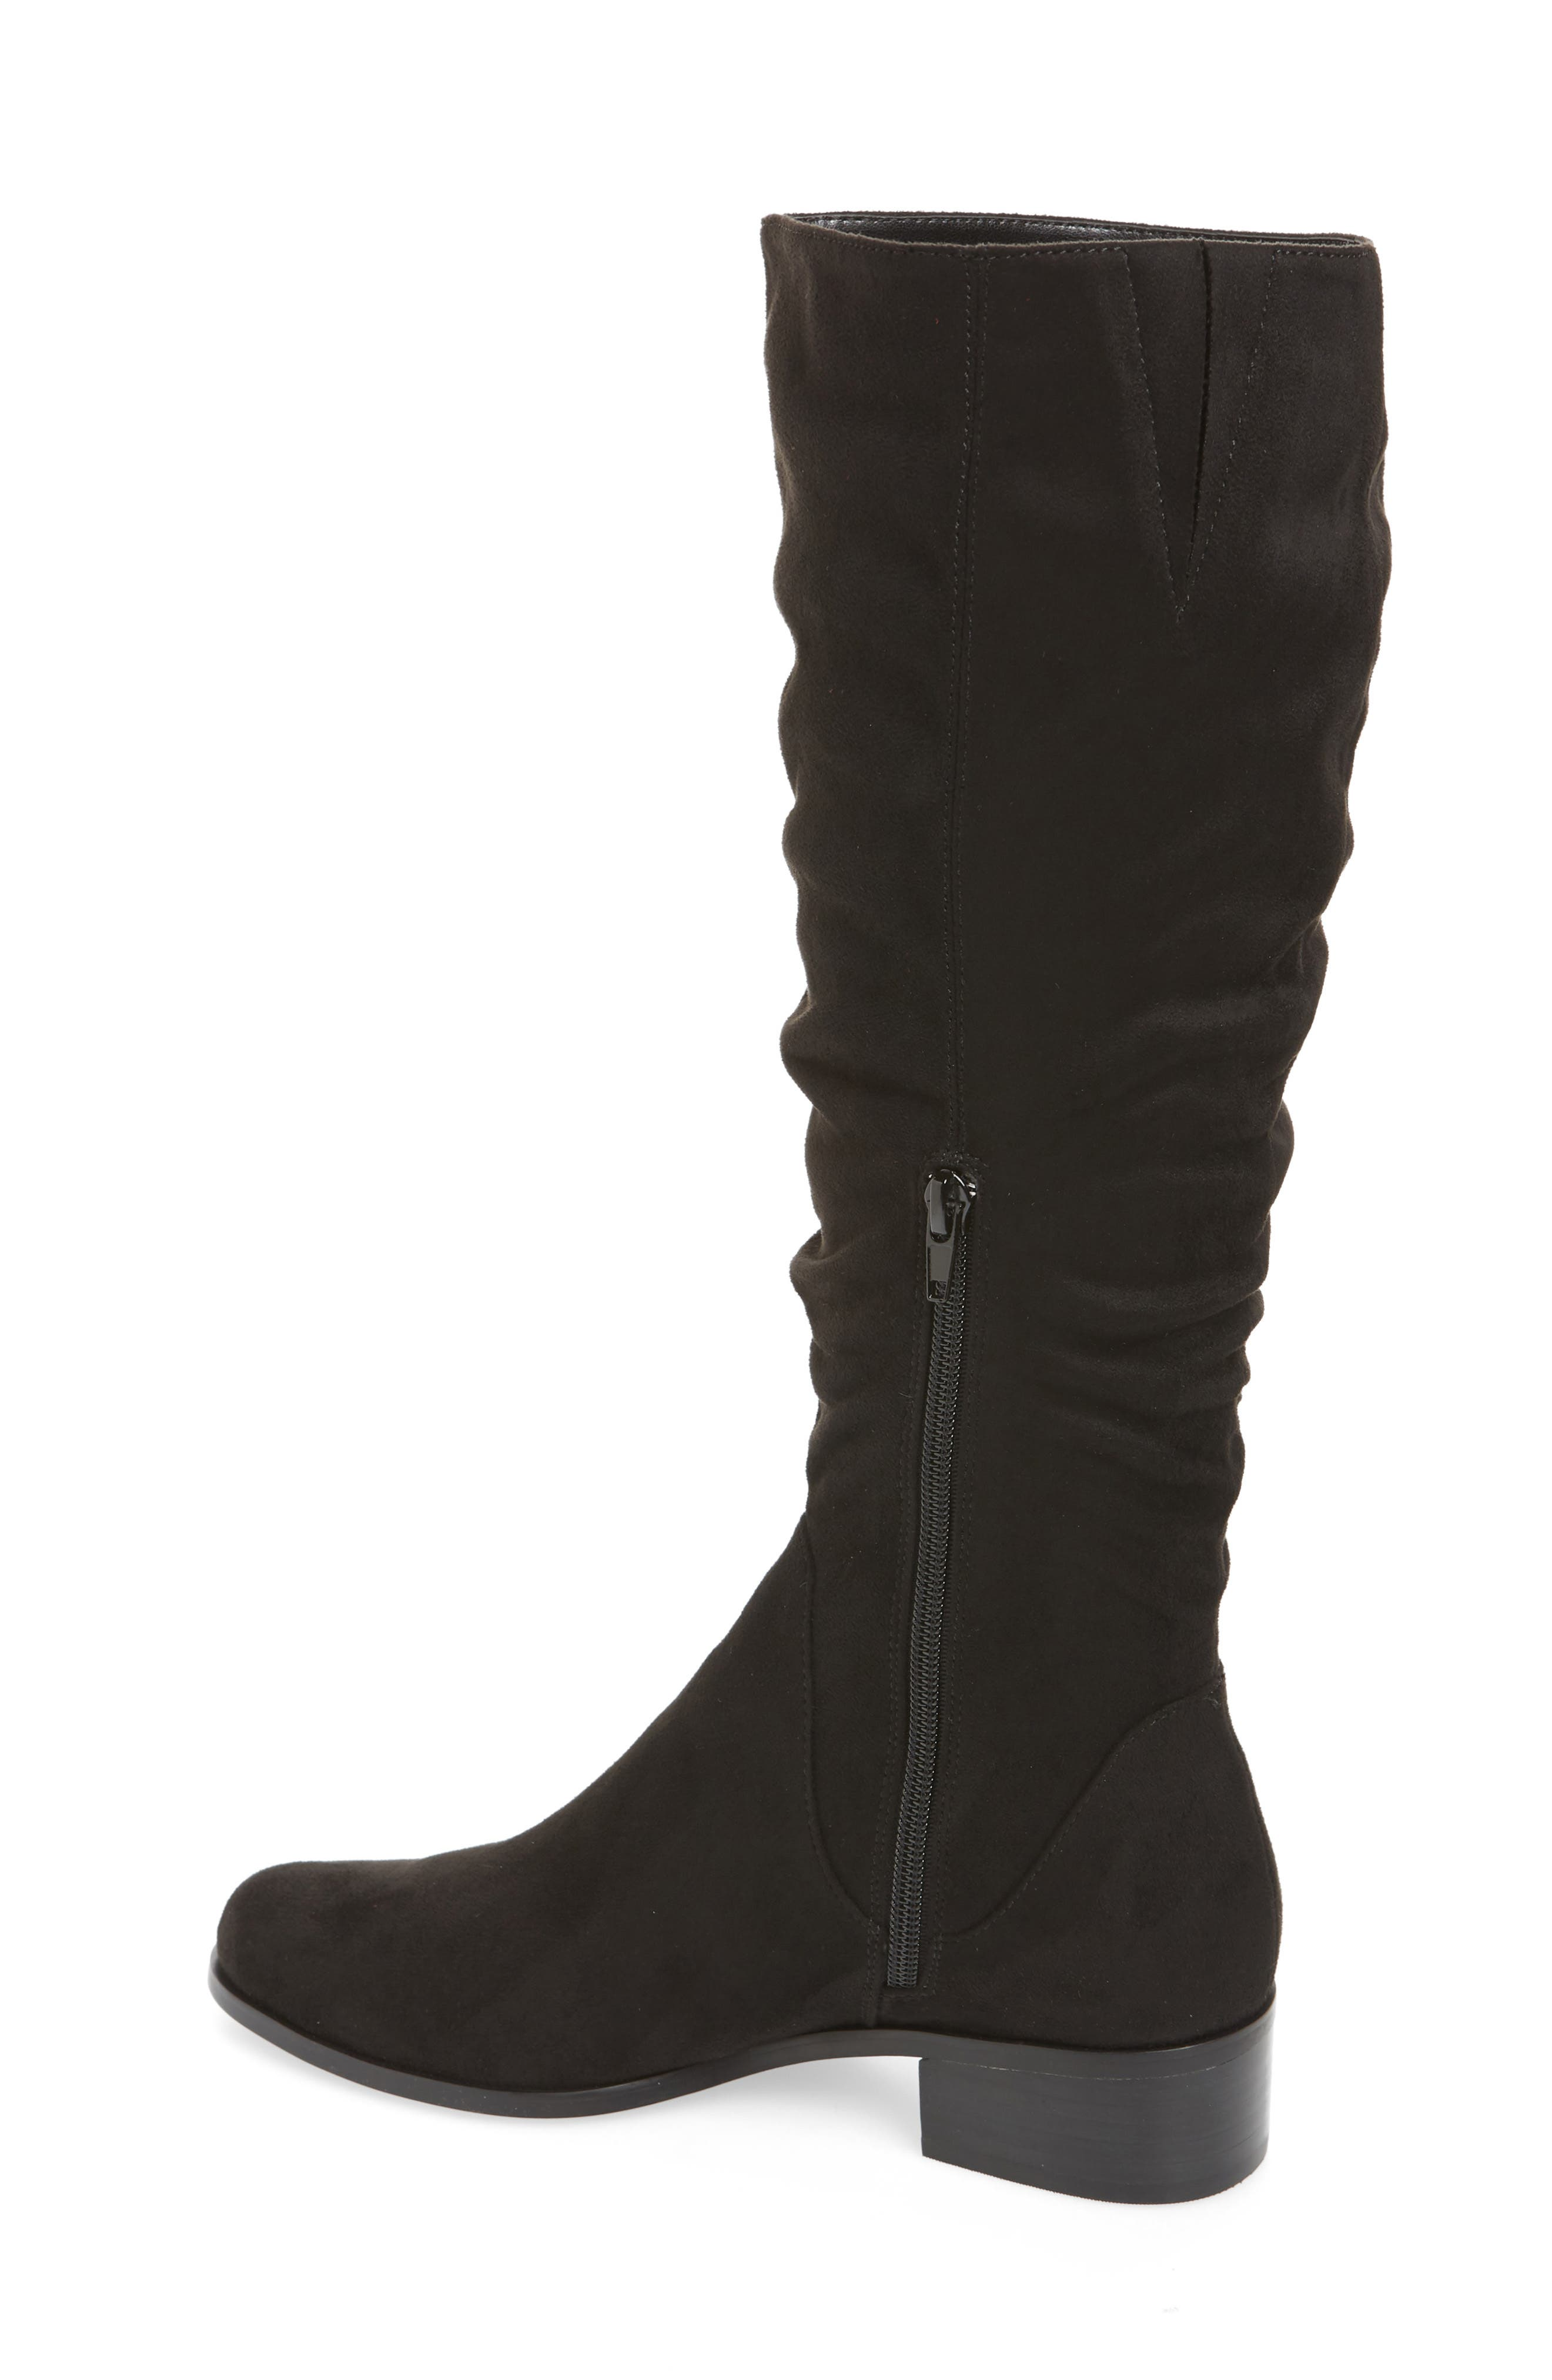 Guru Slouchy Knee High Boot,                             Alternate thumbnail 2, color,                             001